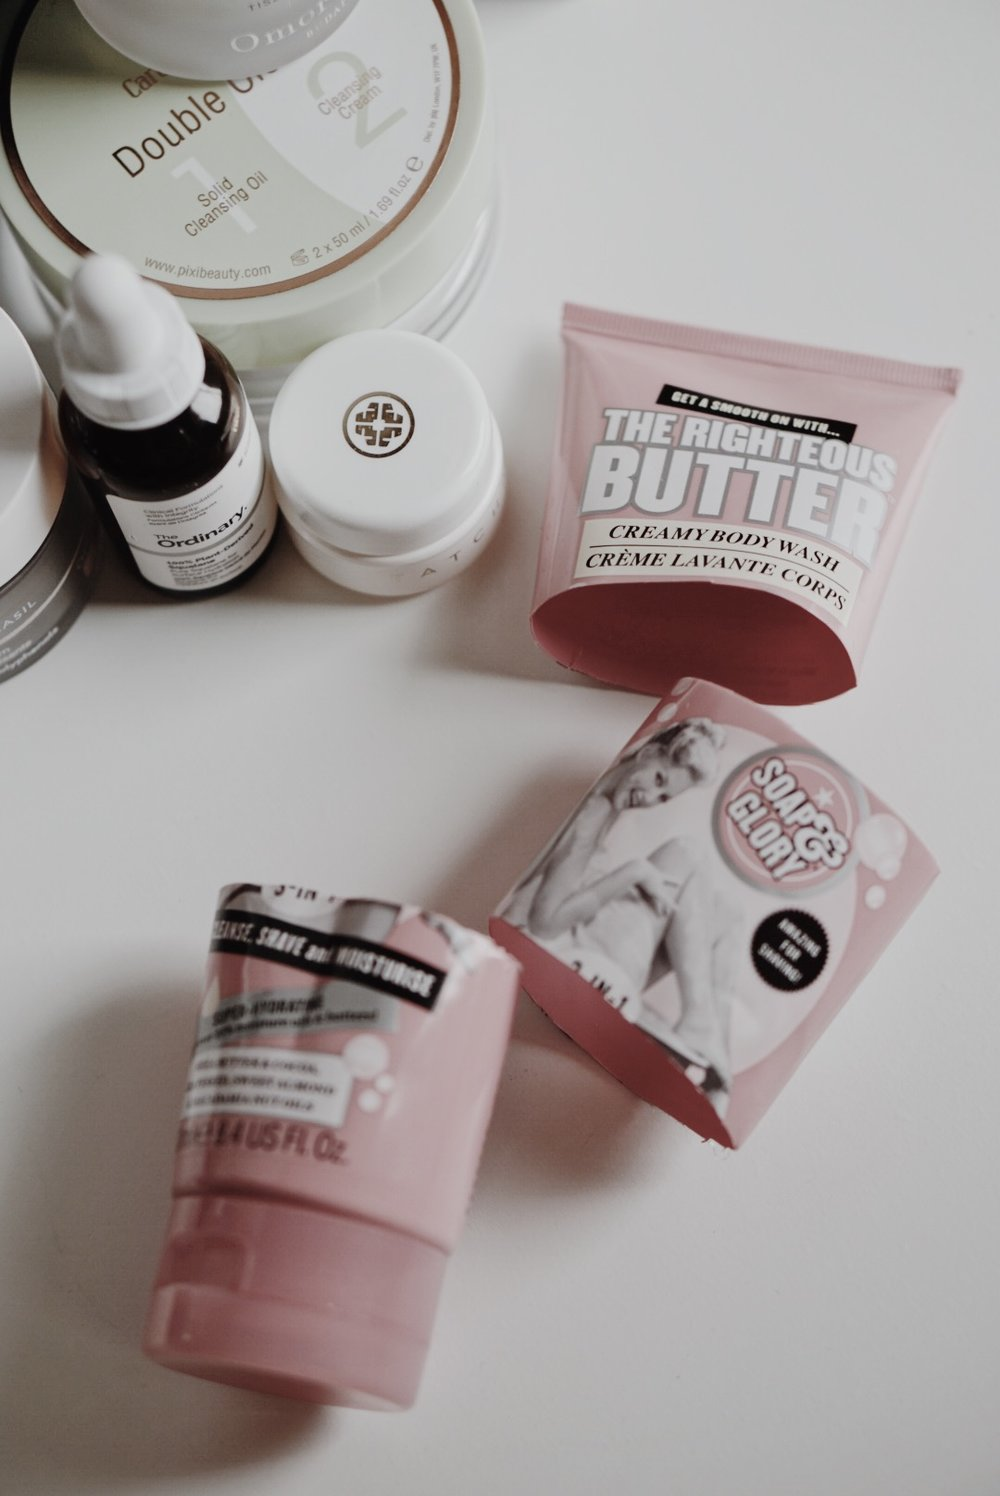 Soap and Glory Righteous Butter Body Wash Review